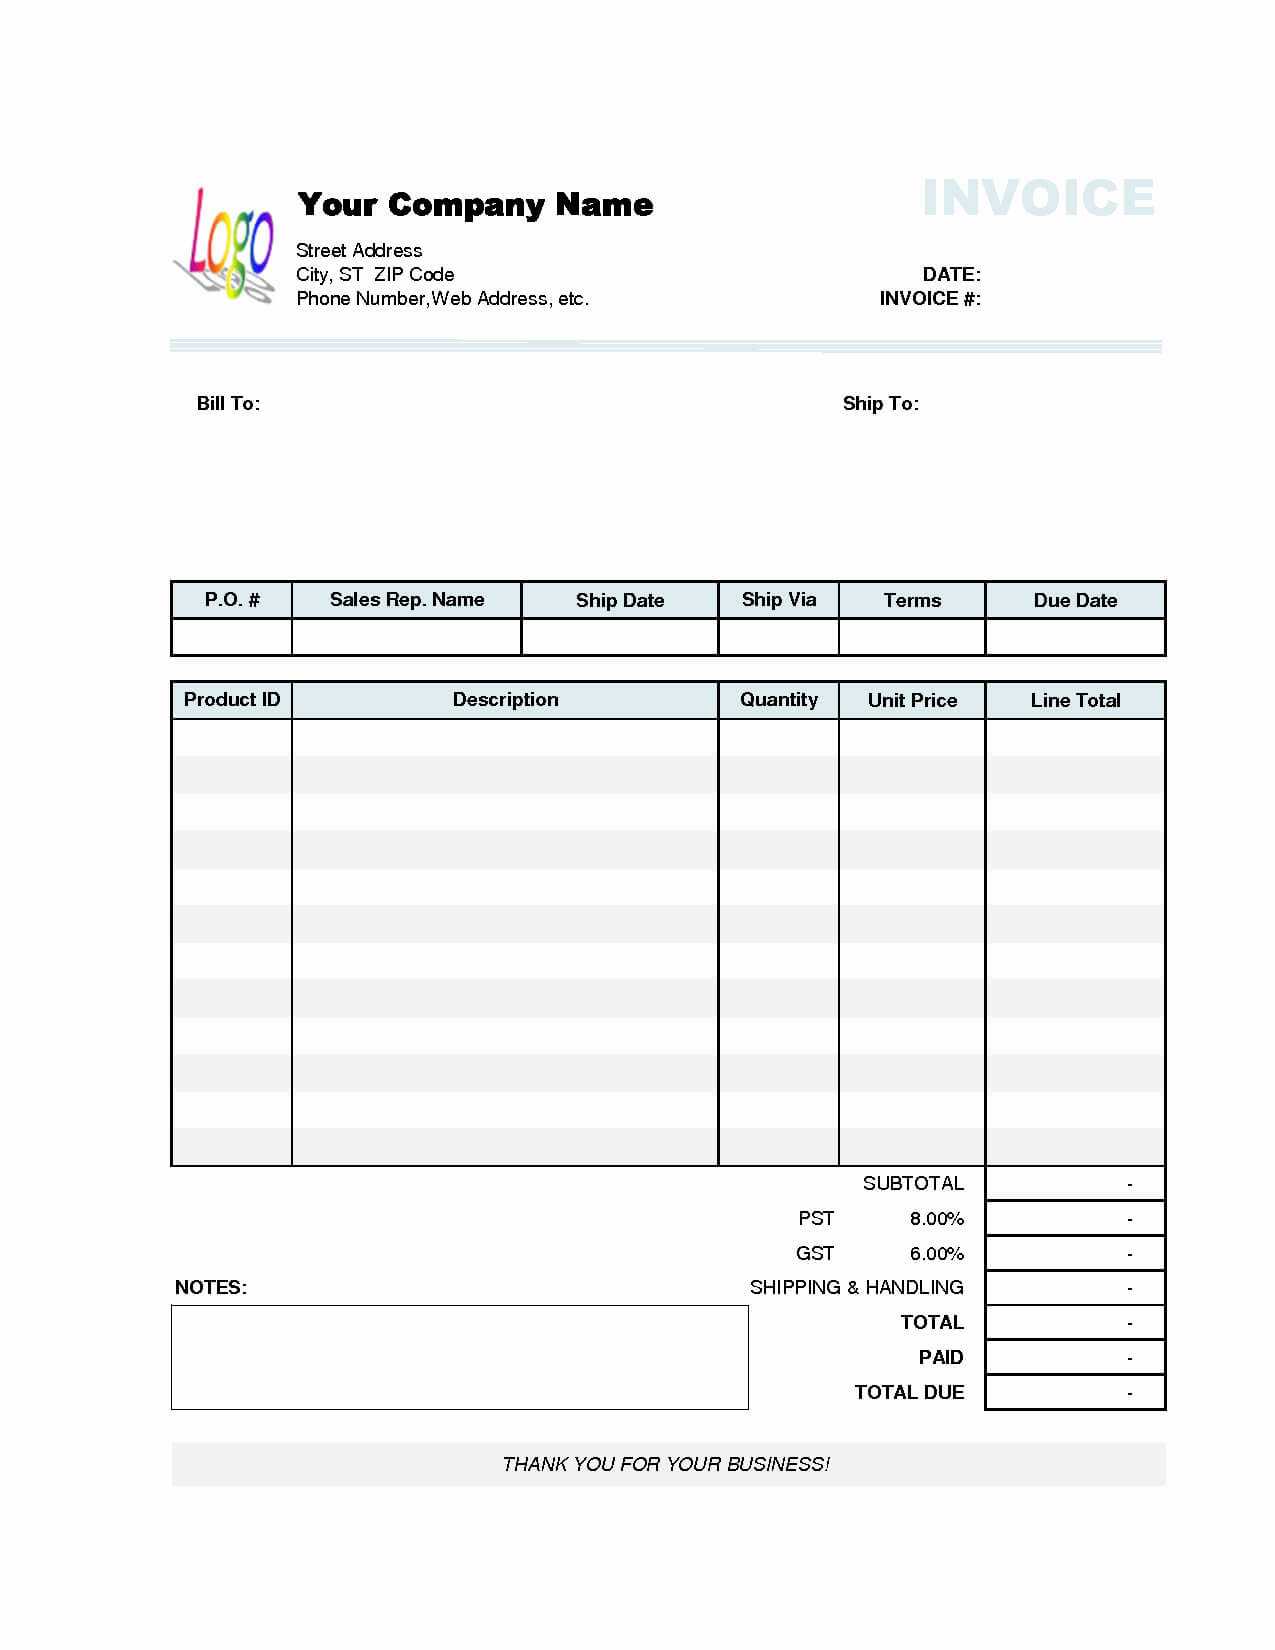 032 Simple Invoice Template Word Fresh Excel Of In With Regard To Invoice Template Word 2010